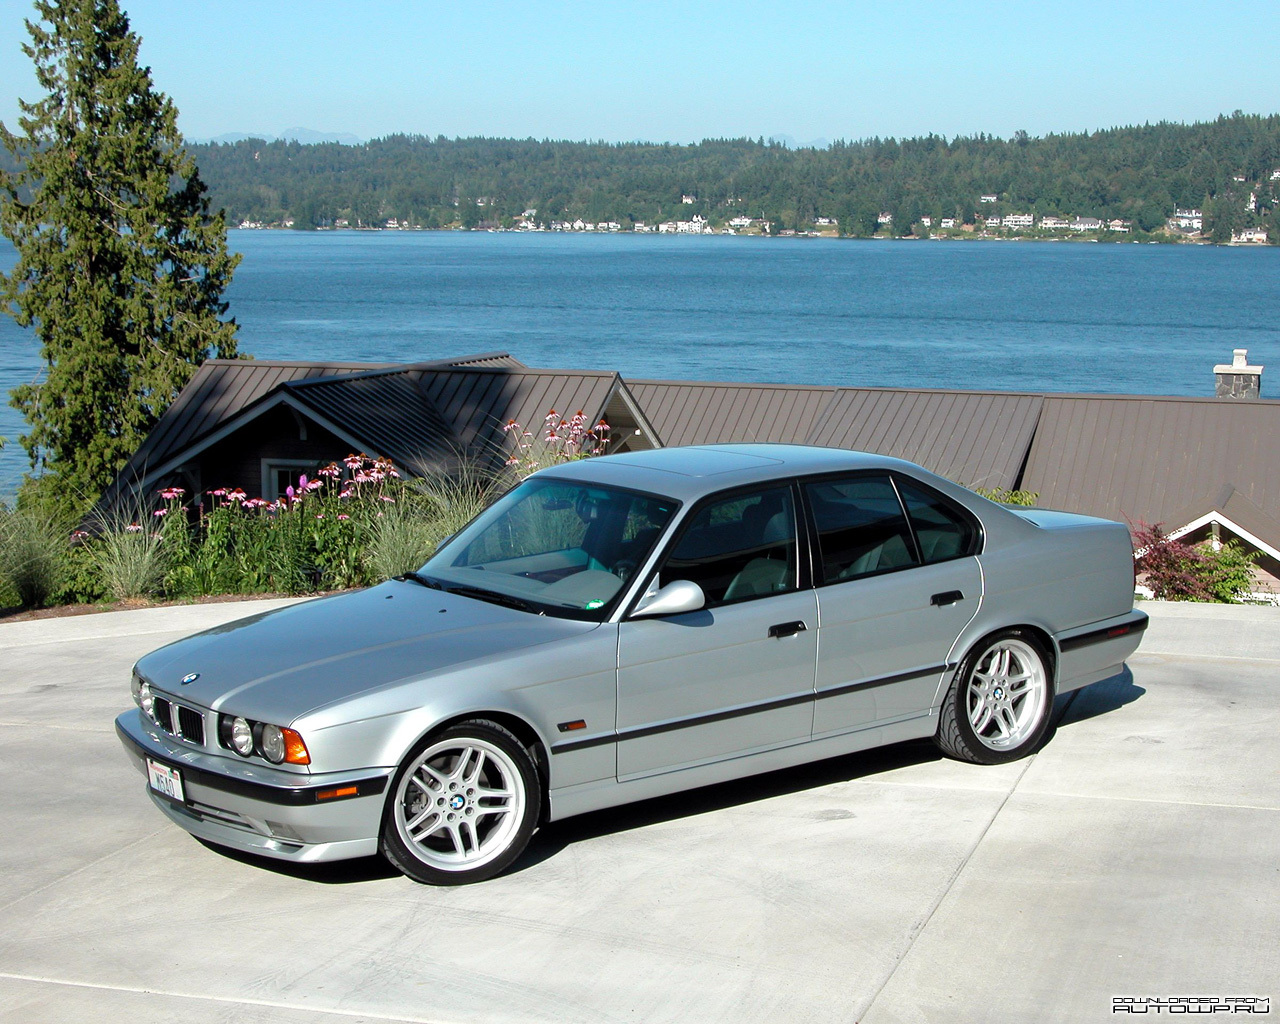 bmw m5 e34 picture 64211 bmw photo gallery. Black Bedroom Furniture Sets. Home Design Ideas